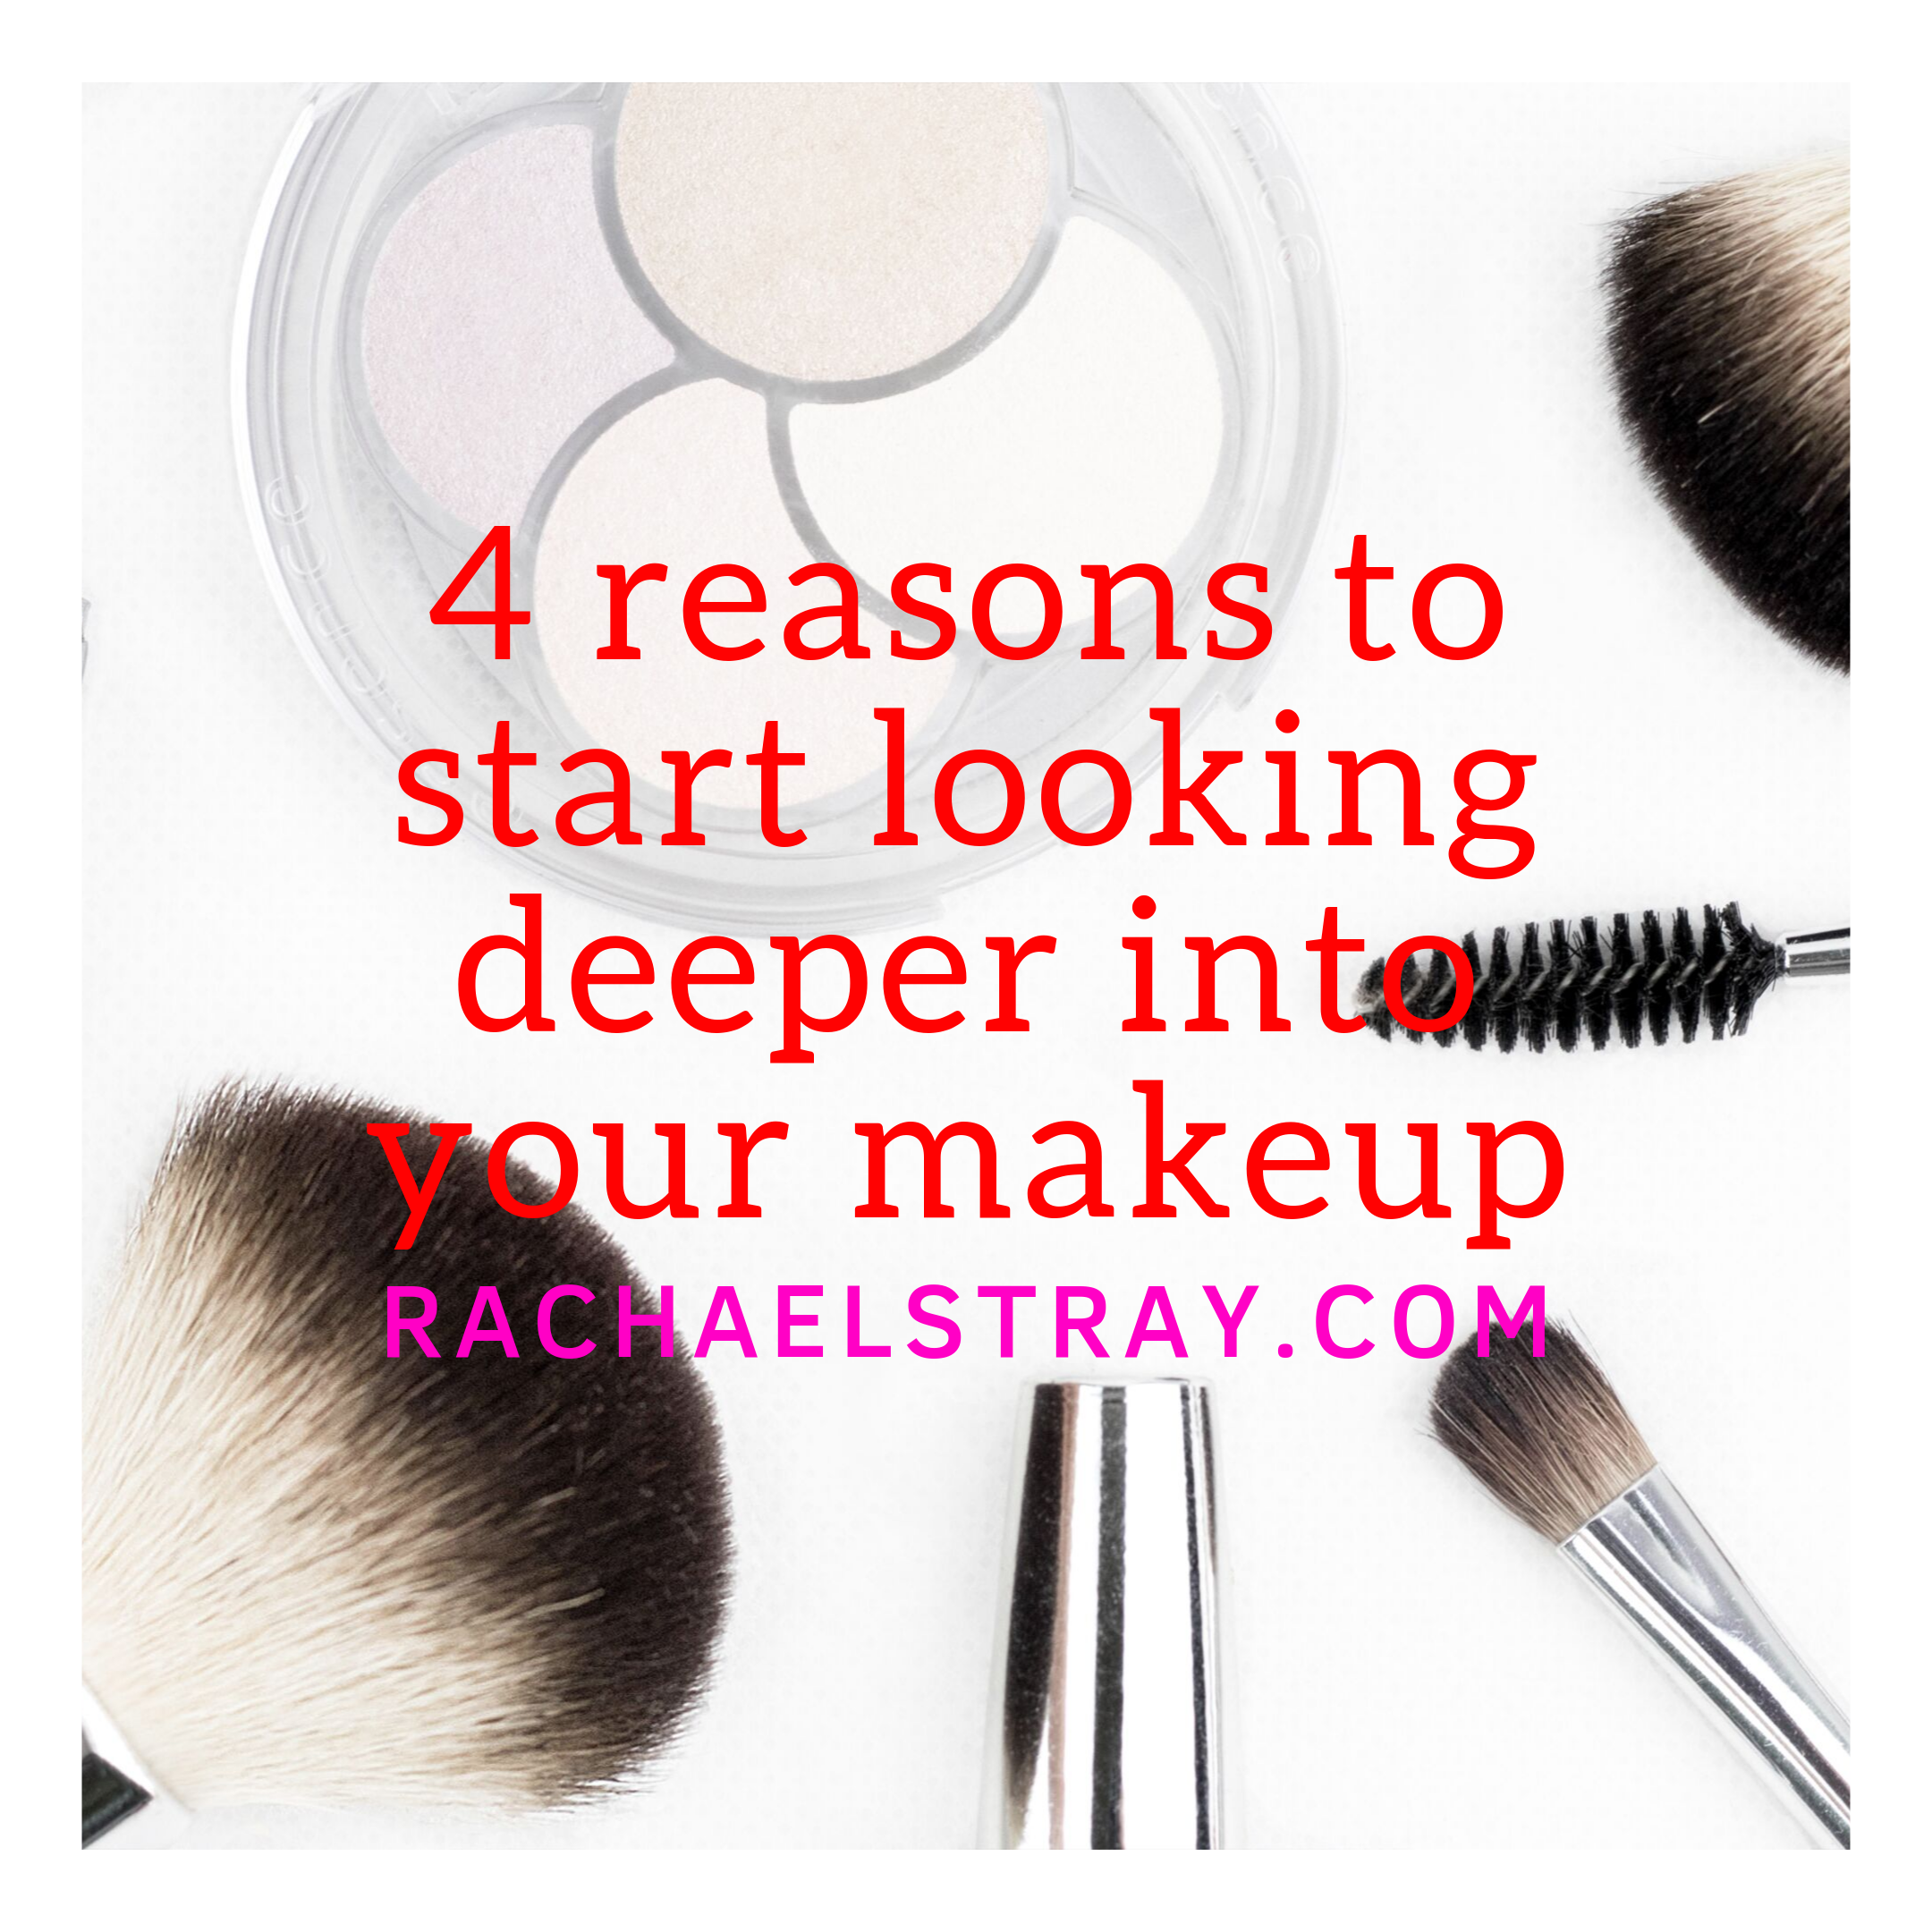 4 reasons to start looking deeper into your makeup (AD)